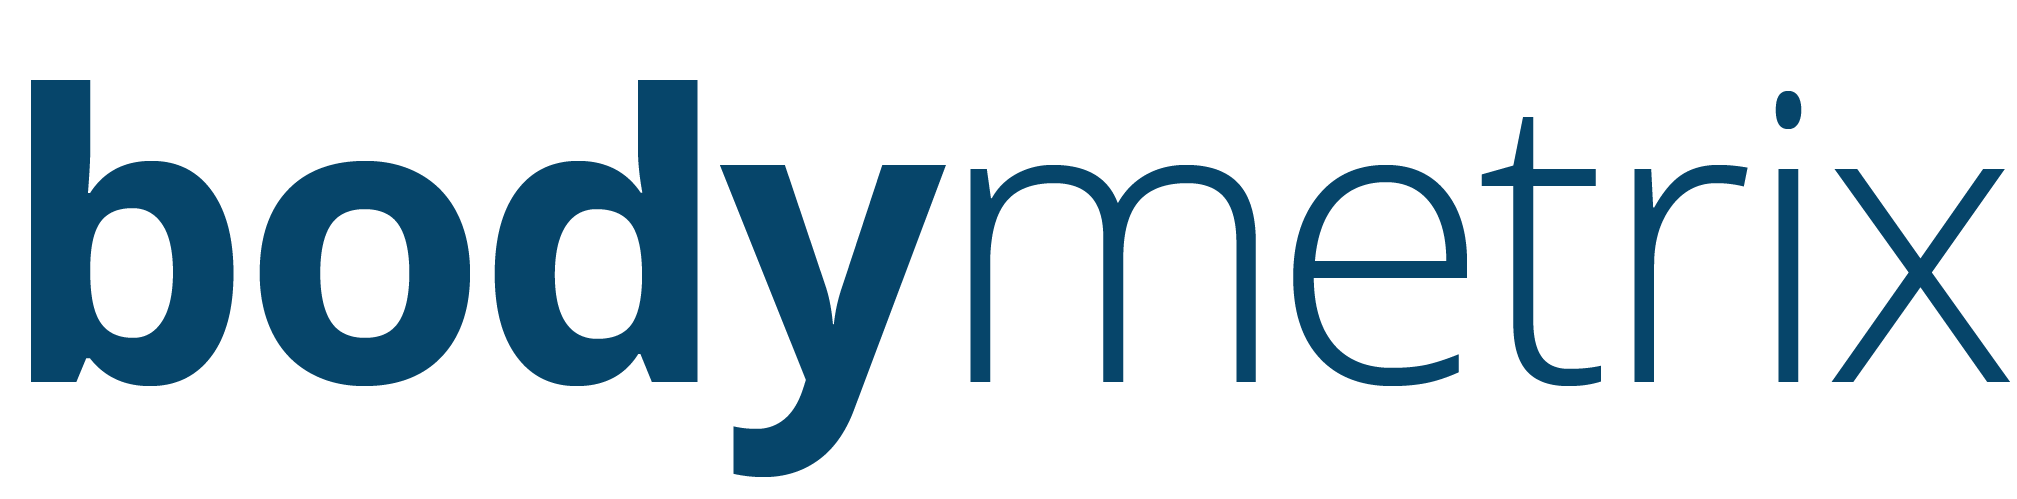 BodyMetrix new logo - blue